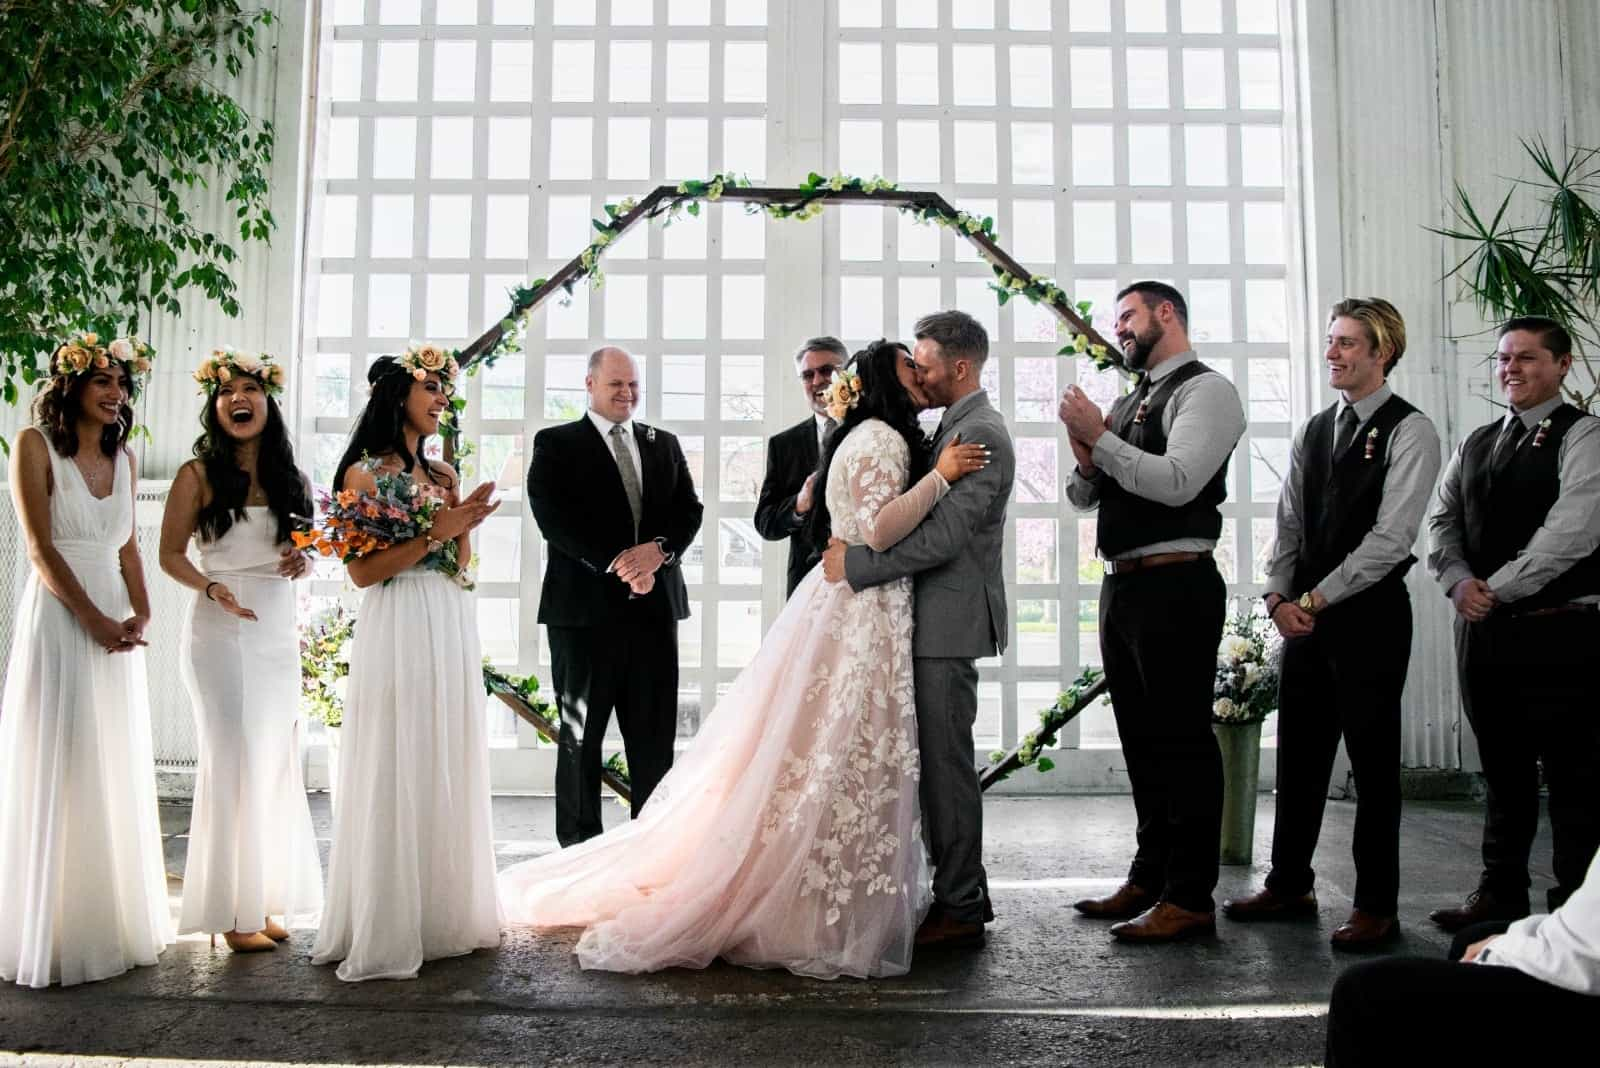 bride and groom kissing while standing near bridesmaids